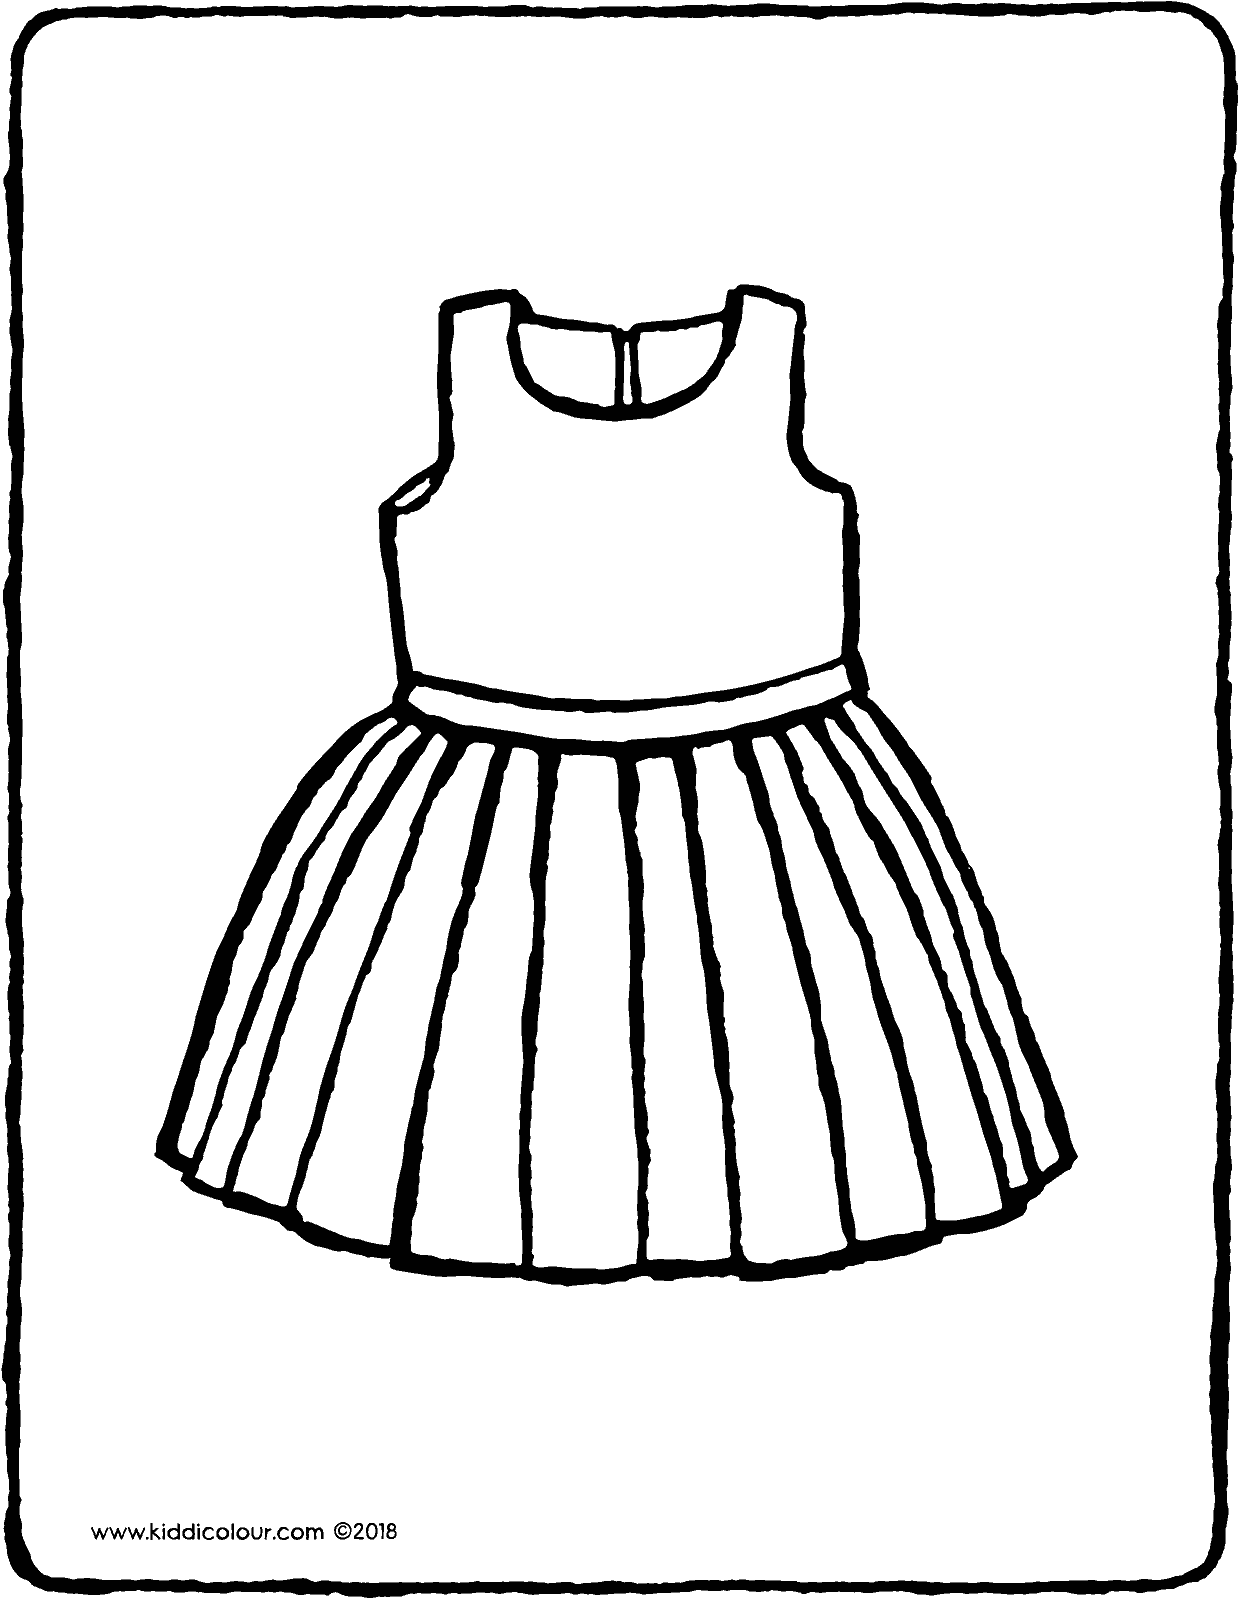 vêtements robe coloriage dessin image à colorier 01V